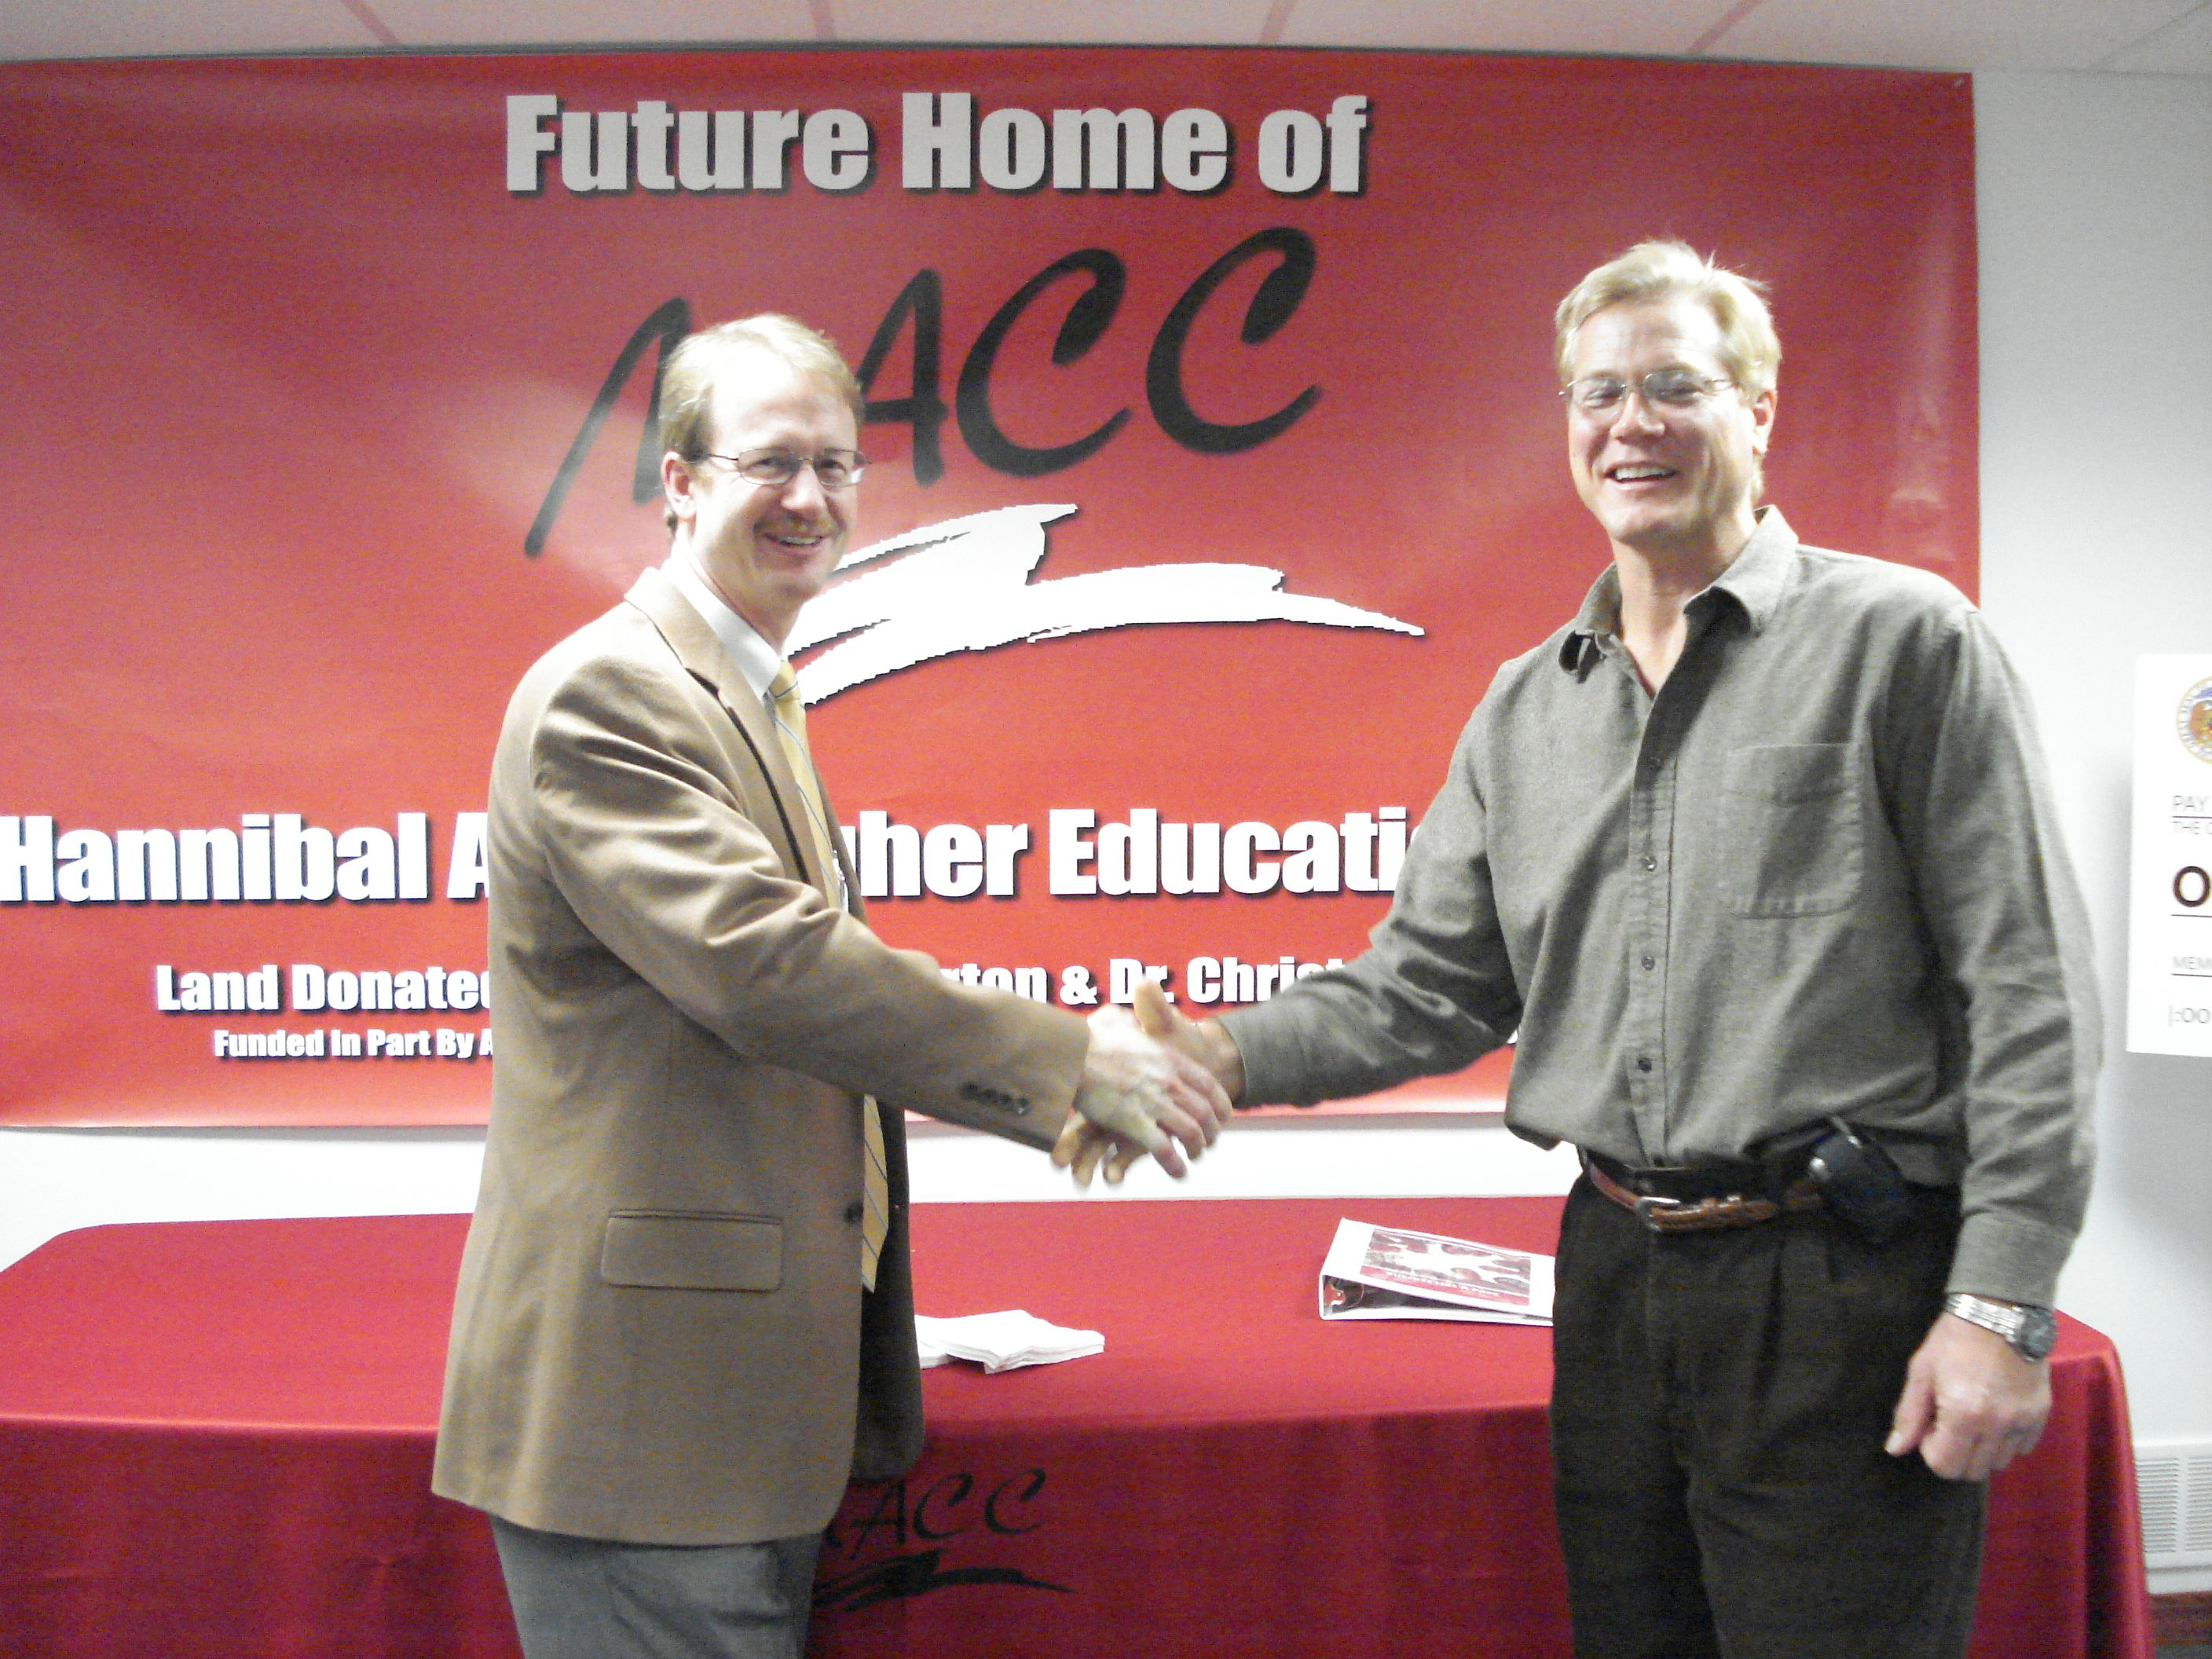 Drs. Burton and Bieniek donate almost six acres for community college.